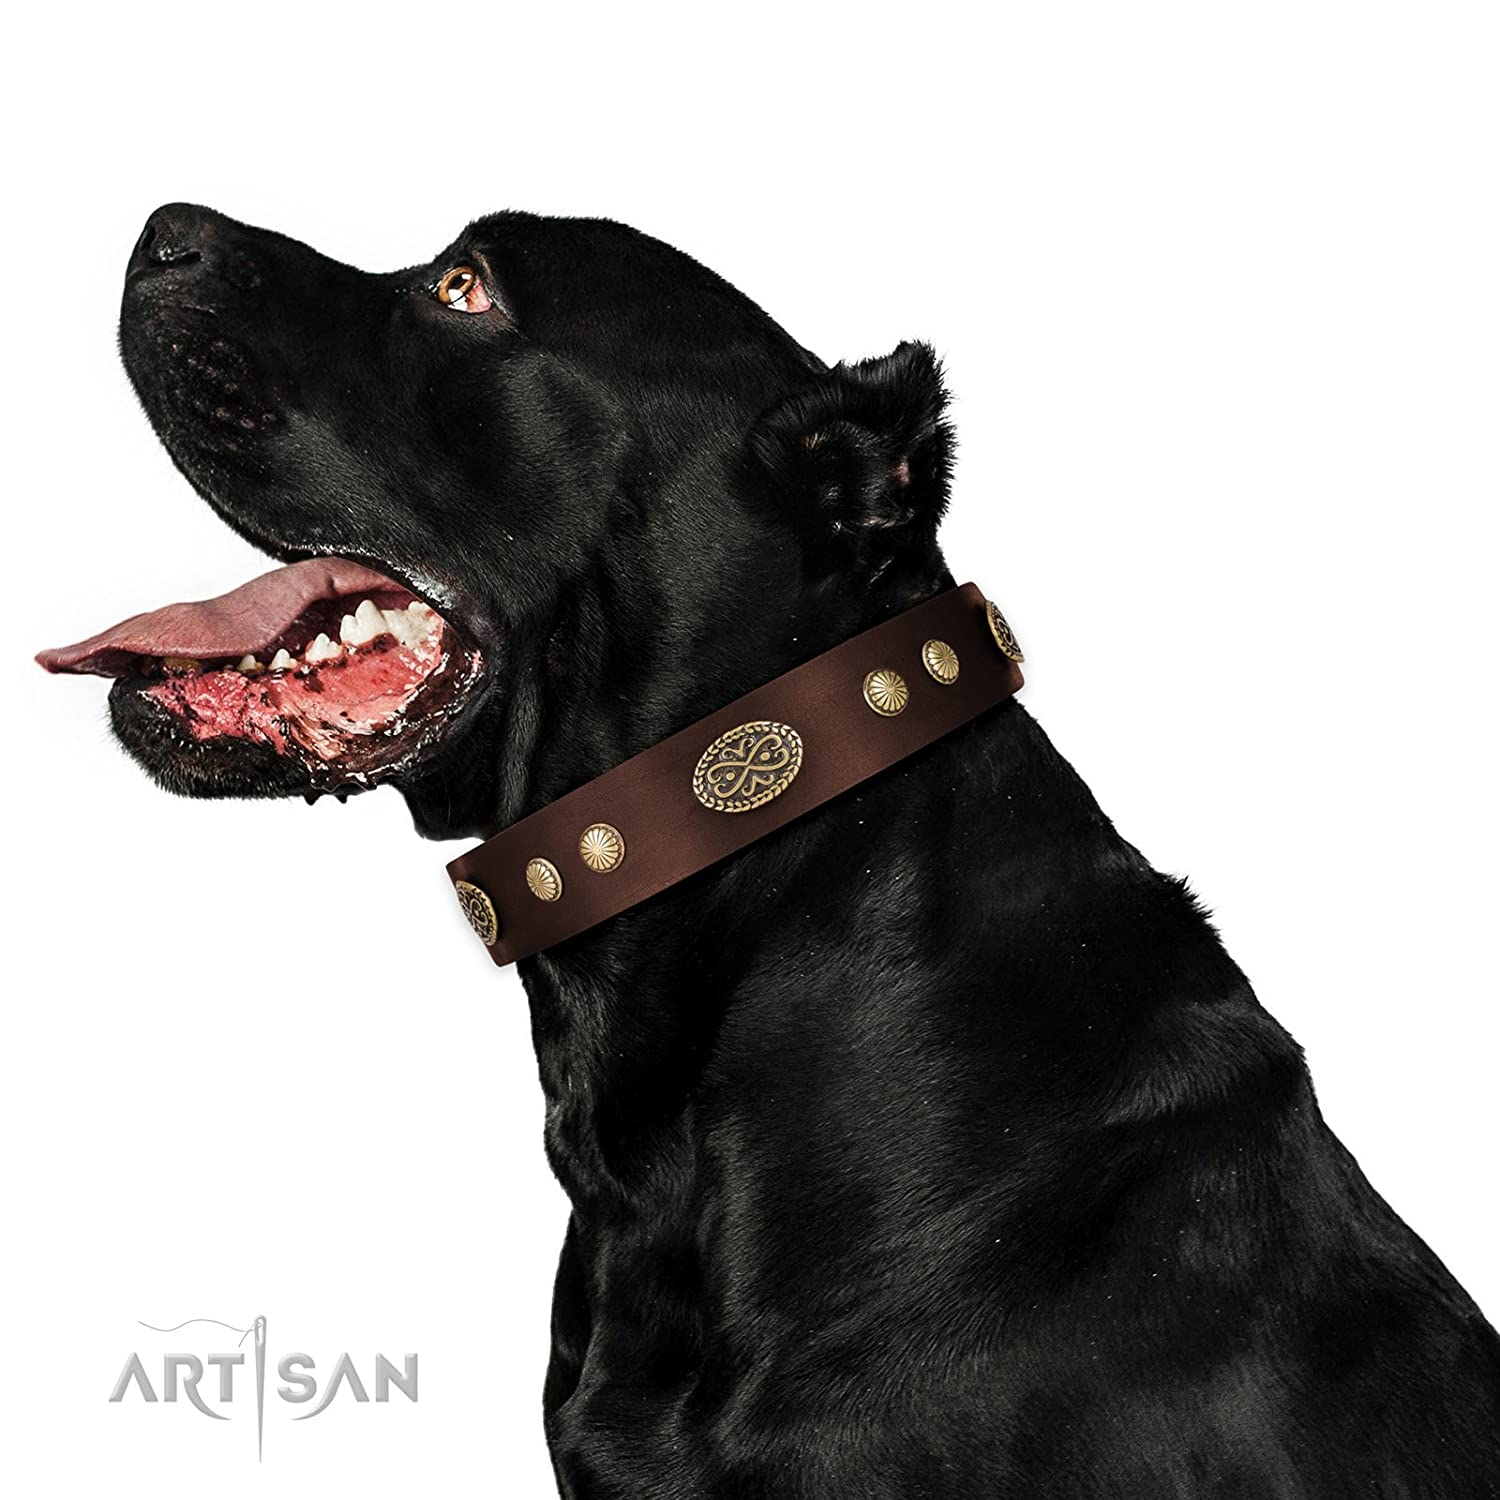 Fits for 25 inch (63cm) dog's neck size FDT Artisan 25 inch Brown Leather Dog Collar Retro Flora 1 1 2 inch (40 mm) Wide Gift Box Included